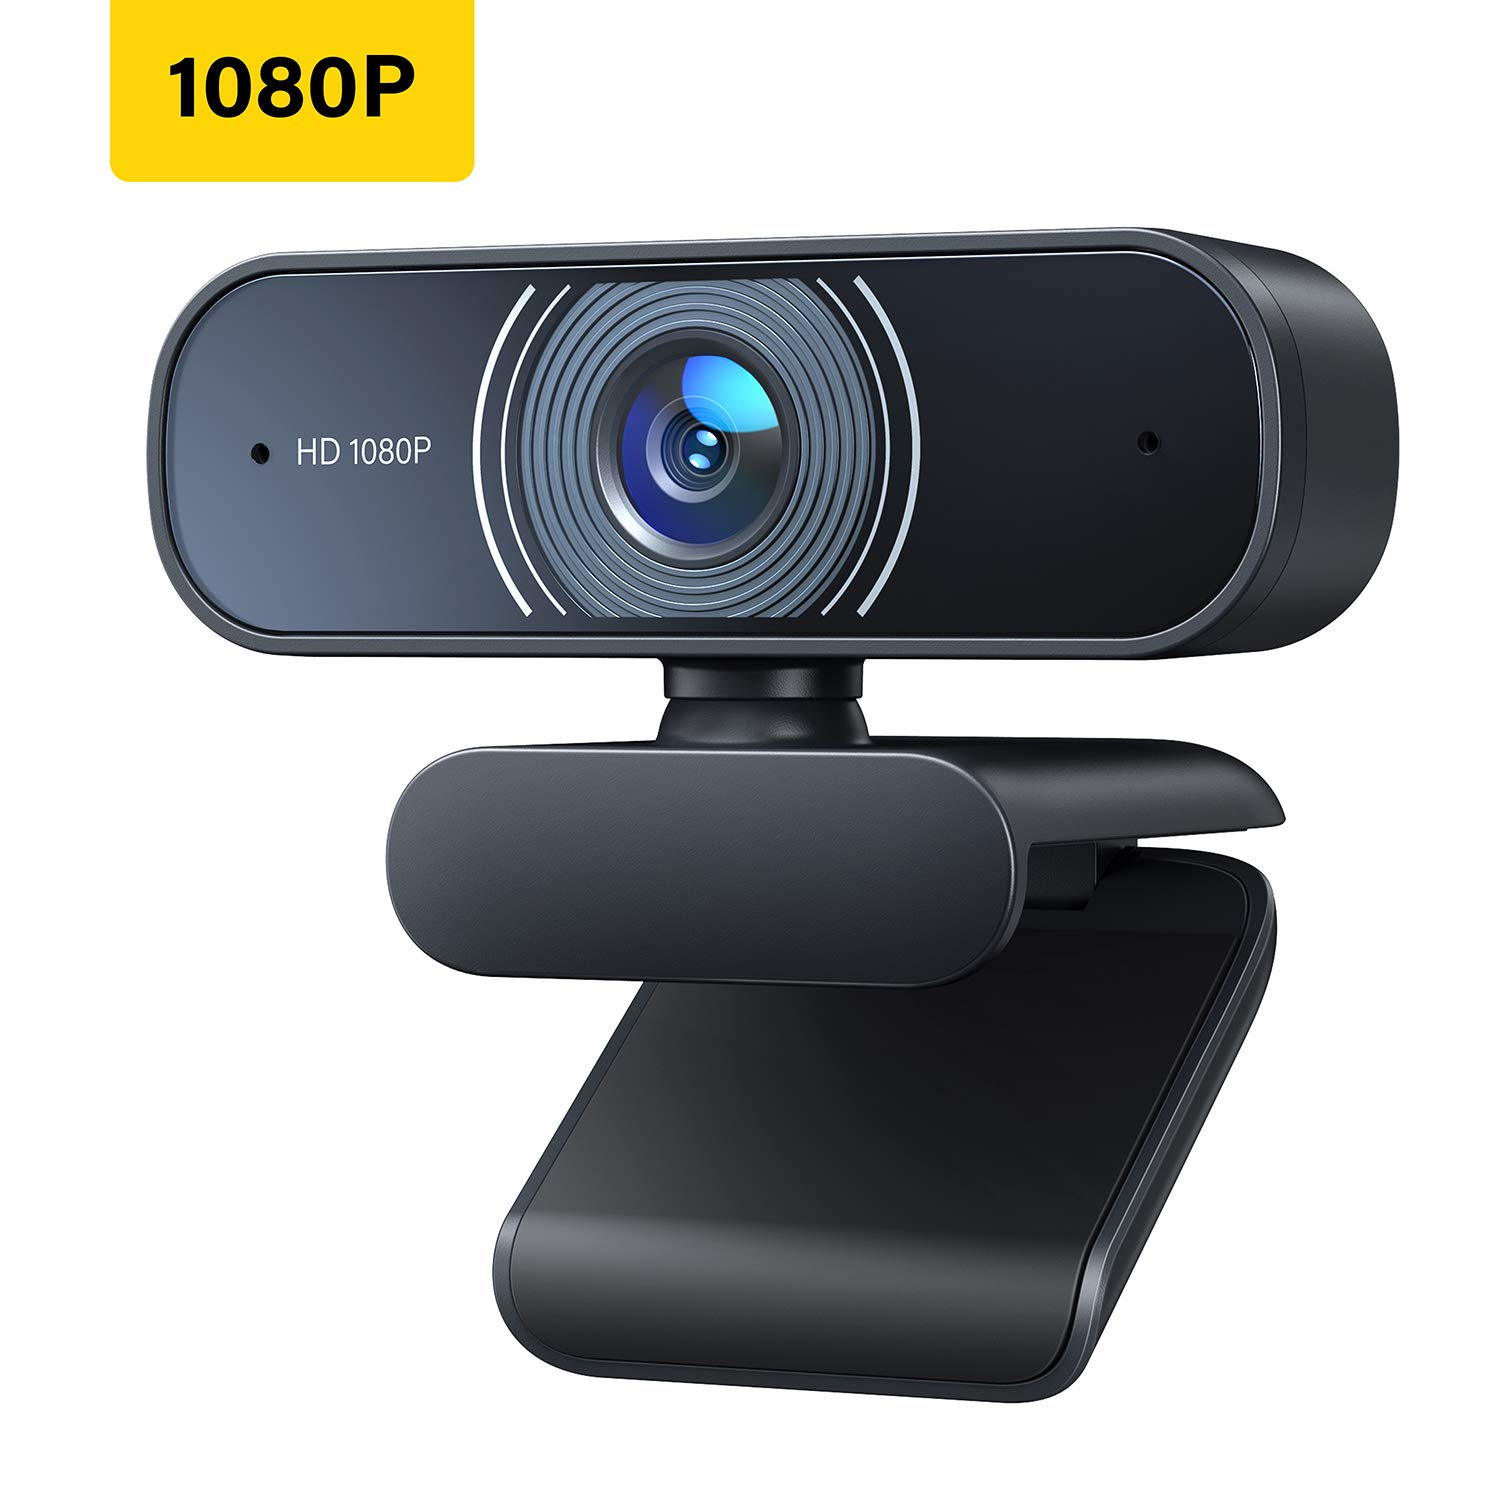 1080P Webcam with Microphone, Full HD USB Computer Camera Streaming Webcam with 80ºWide-Angle View